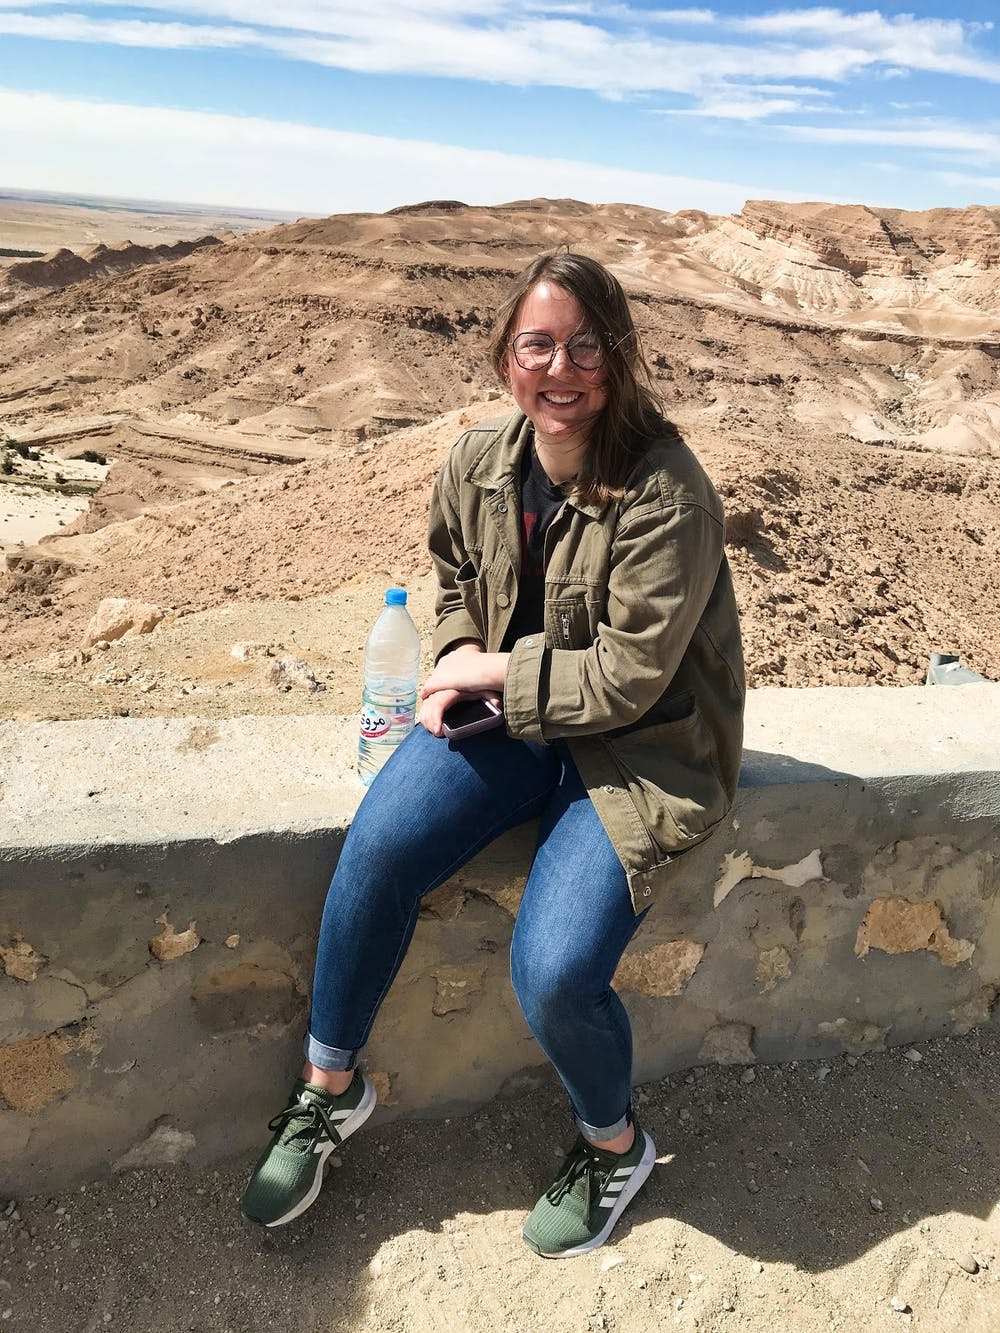 <p>Elyse Legeay is completing an online independent study in place of an internship now that her study abroad experience in Tunisia was cut short due to the novel coronavirus.</p>